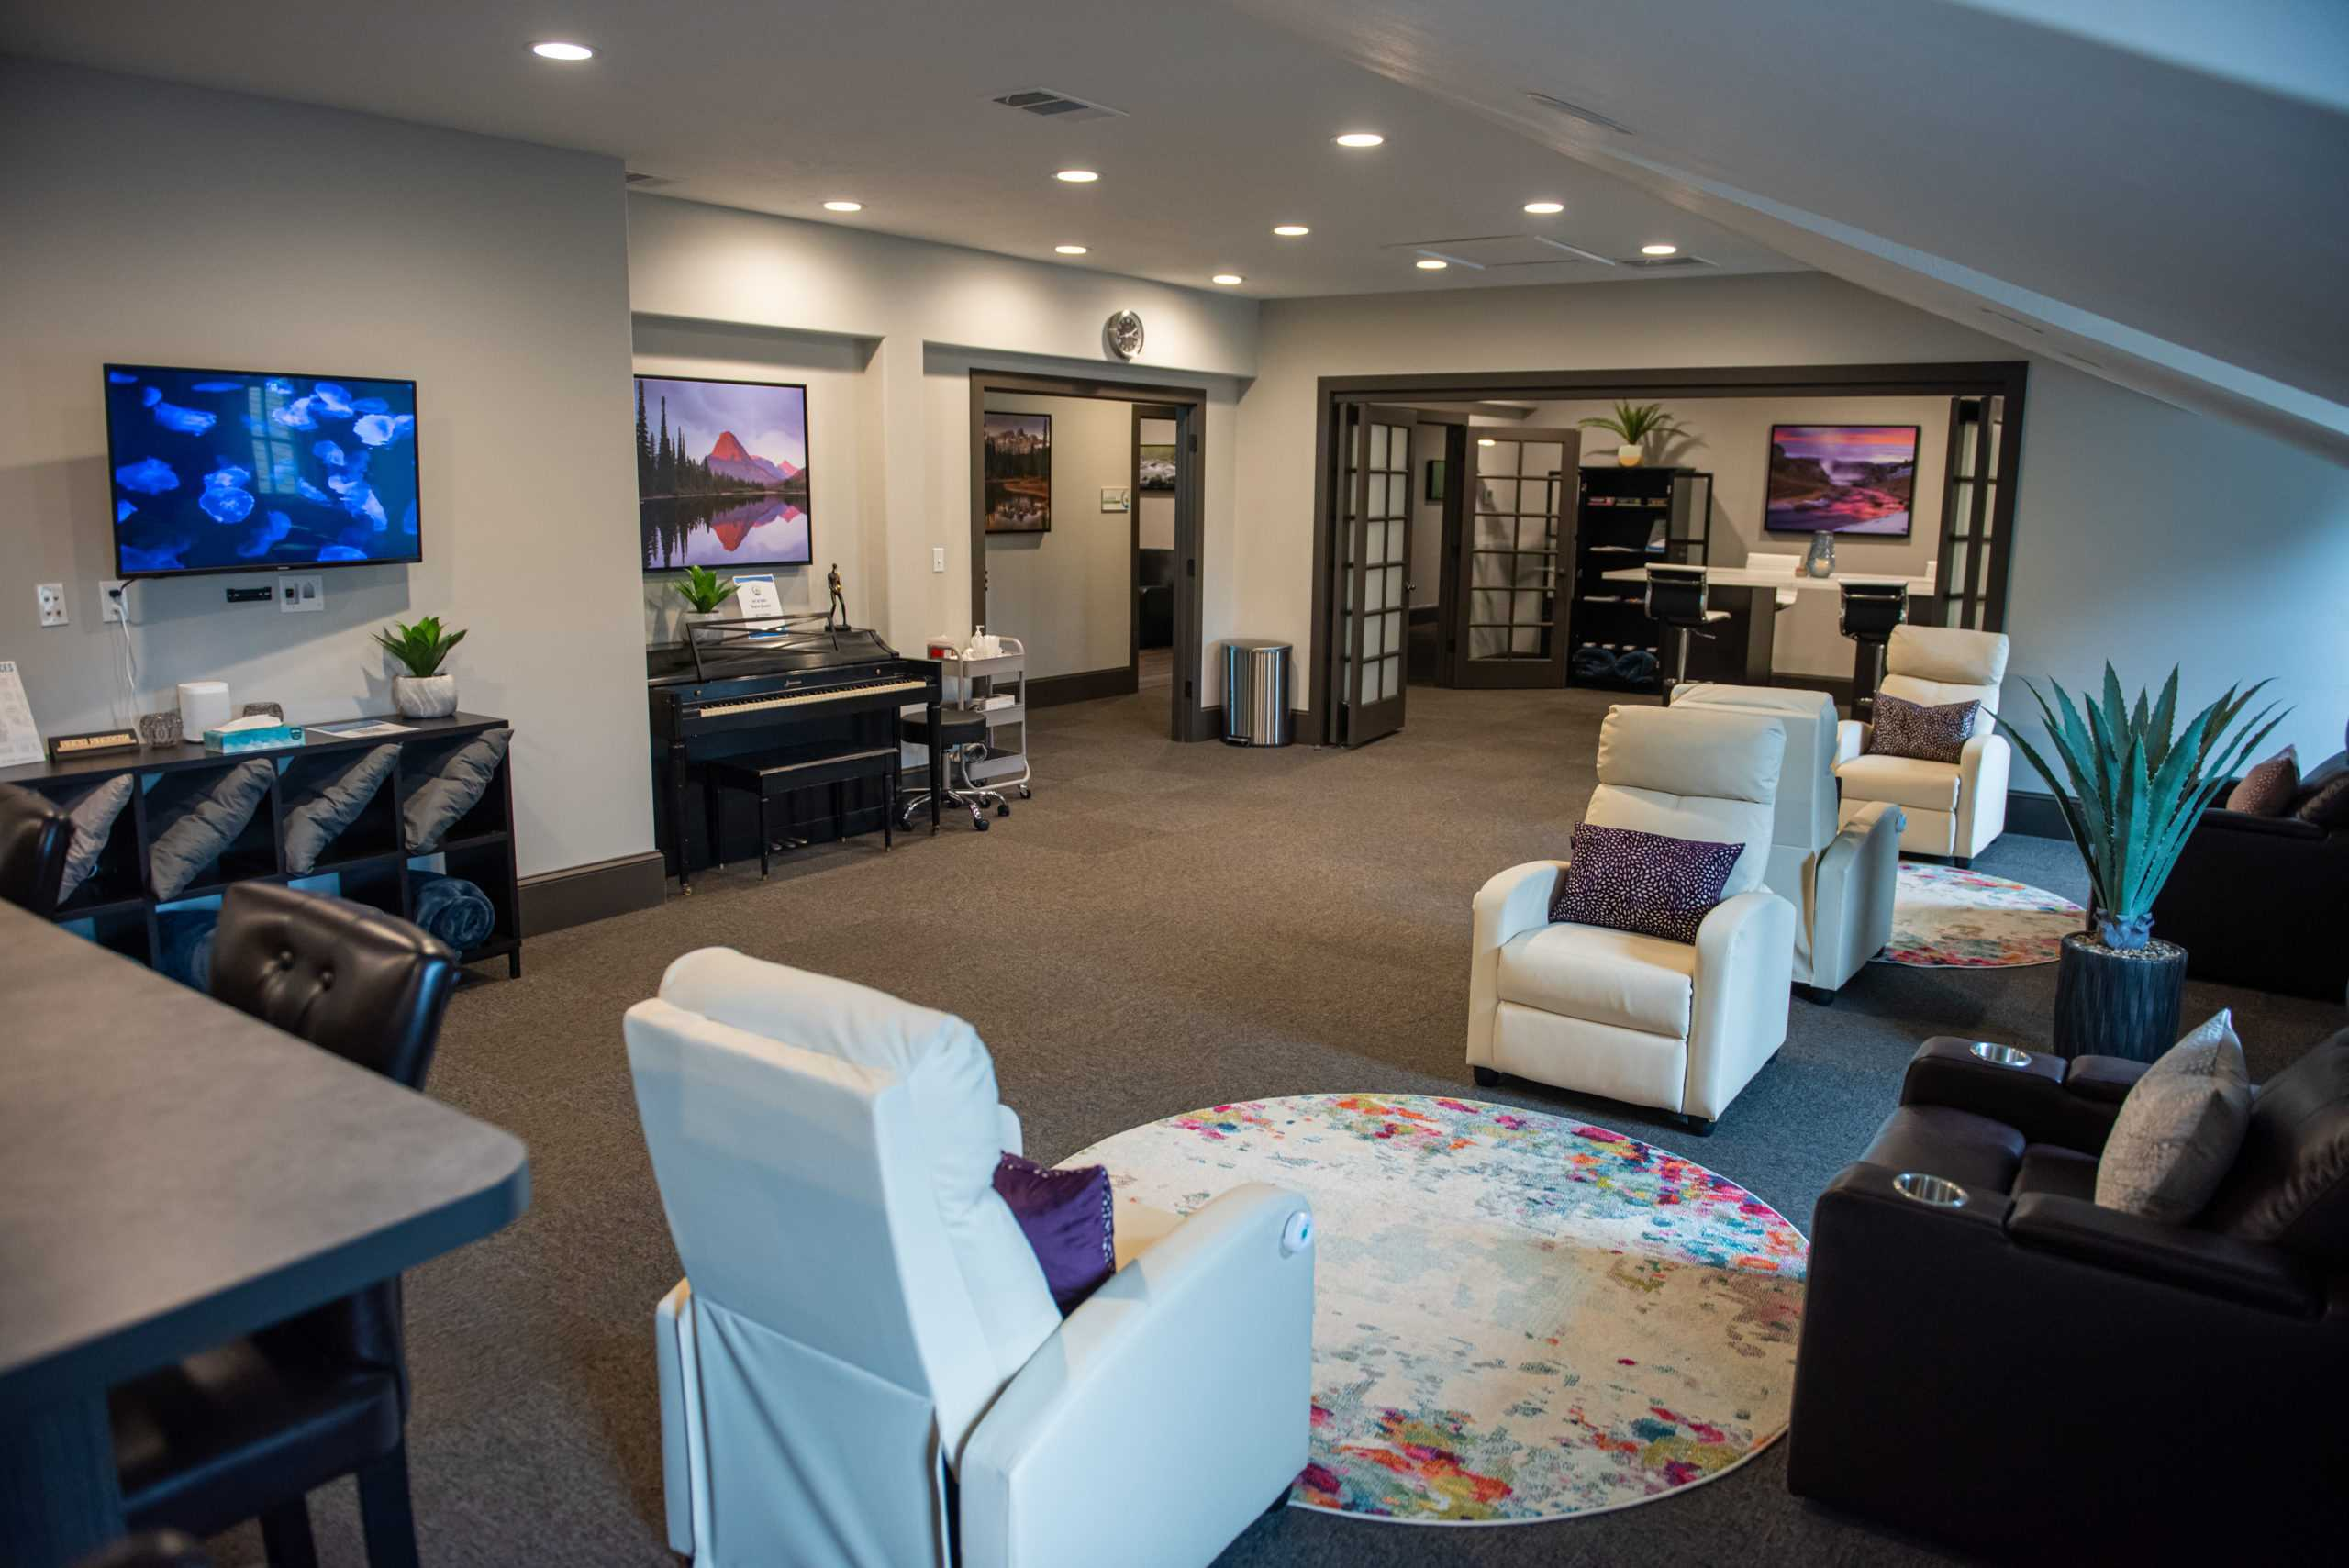 Spacious Room - Lifestyle IV Drips - IV Therapy in Springfield Missouri